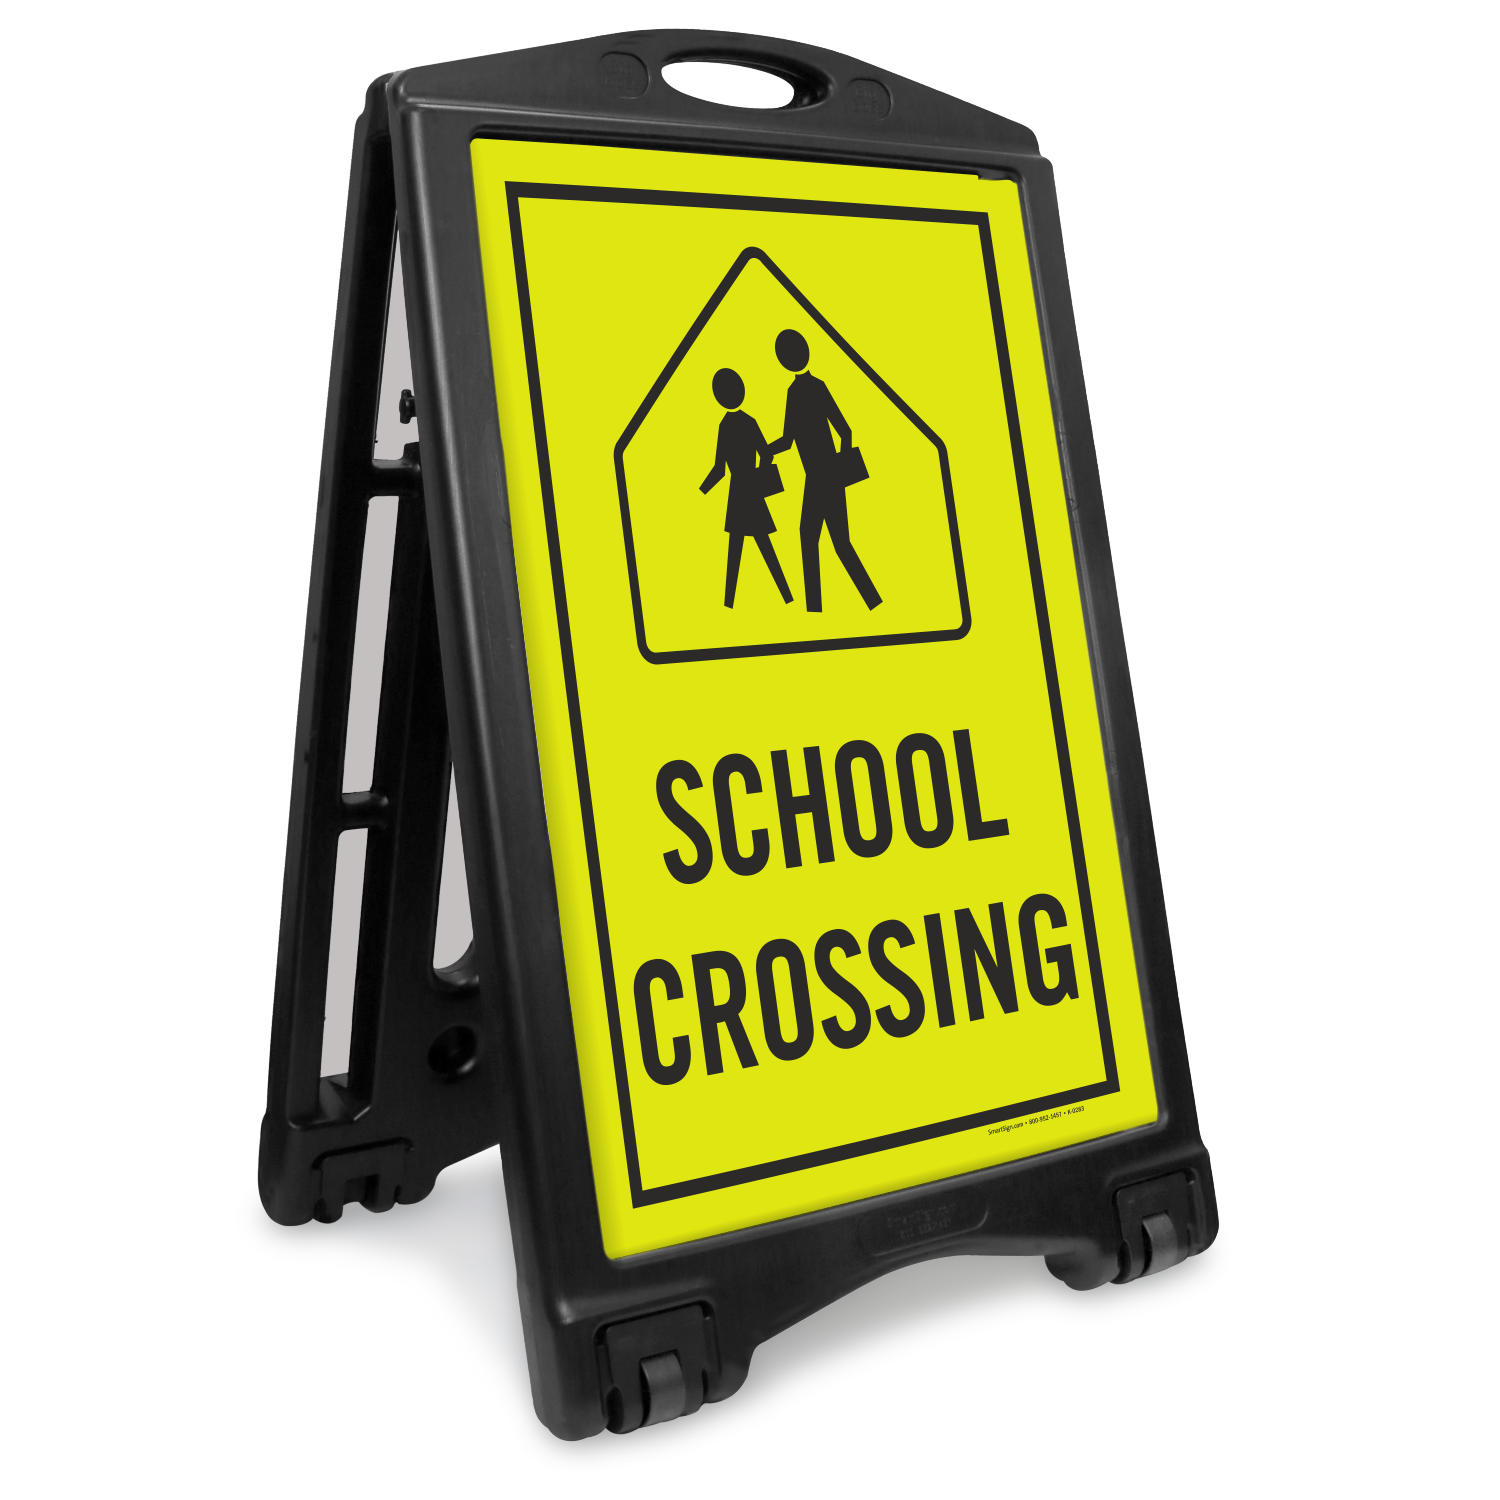 School Crossing | Student Crossing Signs